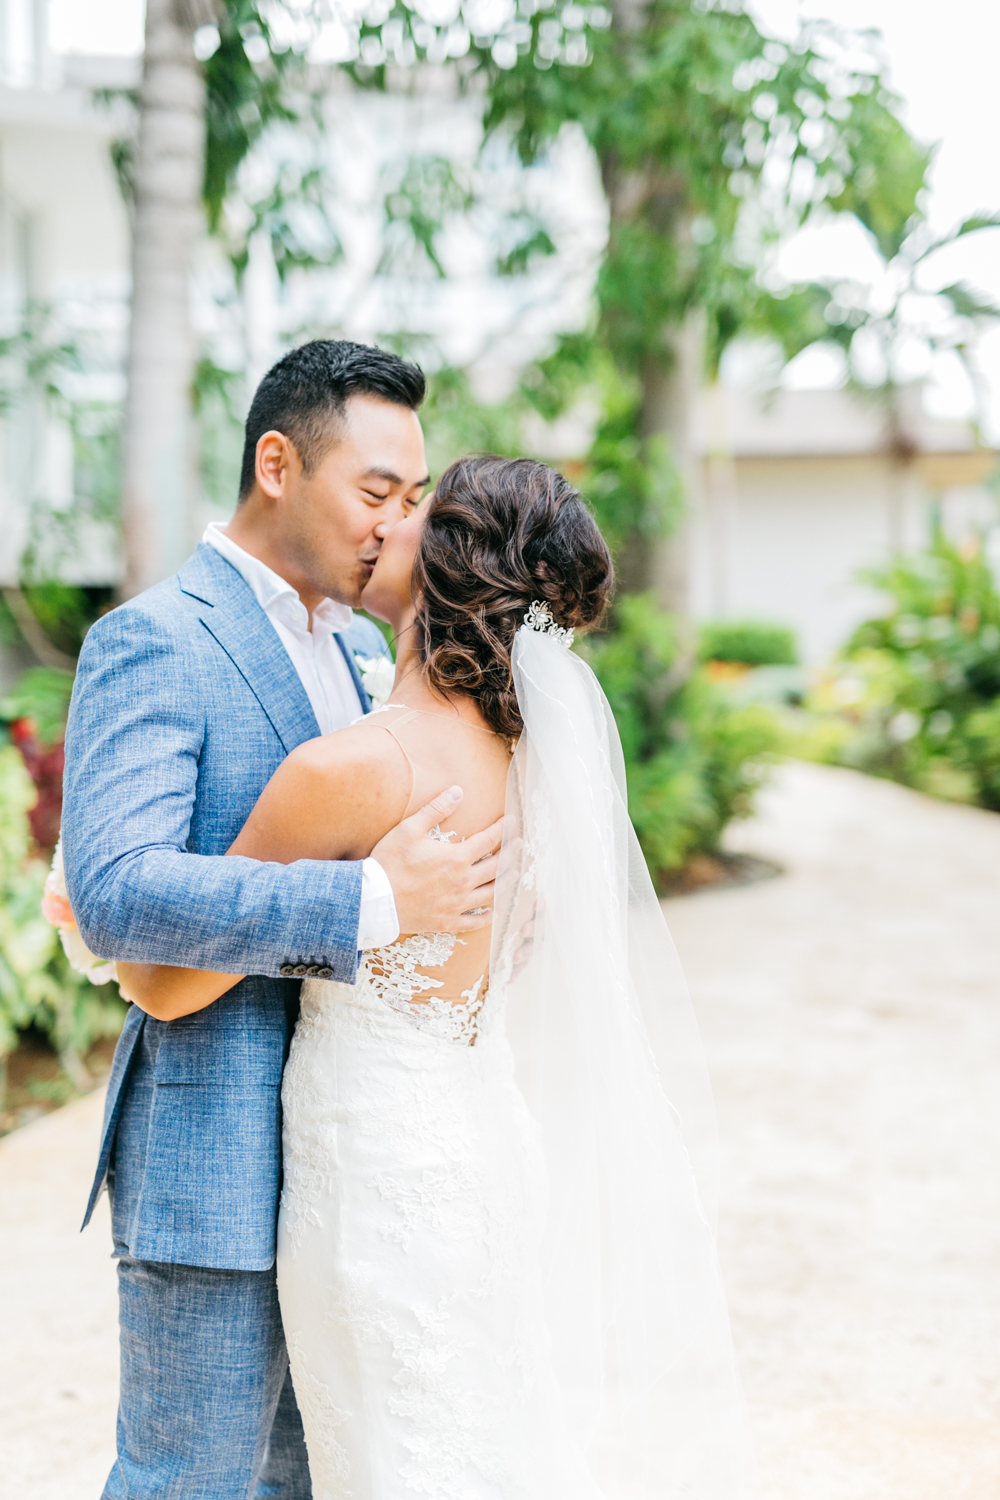 Bride and groom embracing each other at wedding